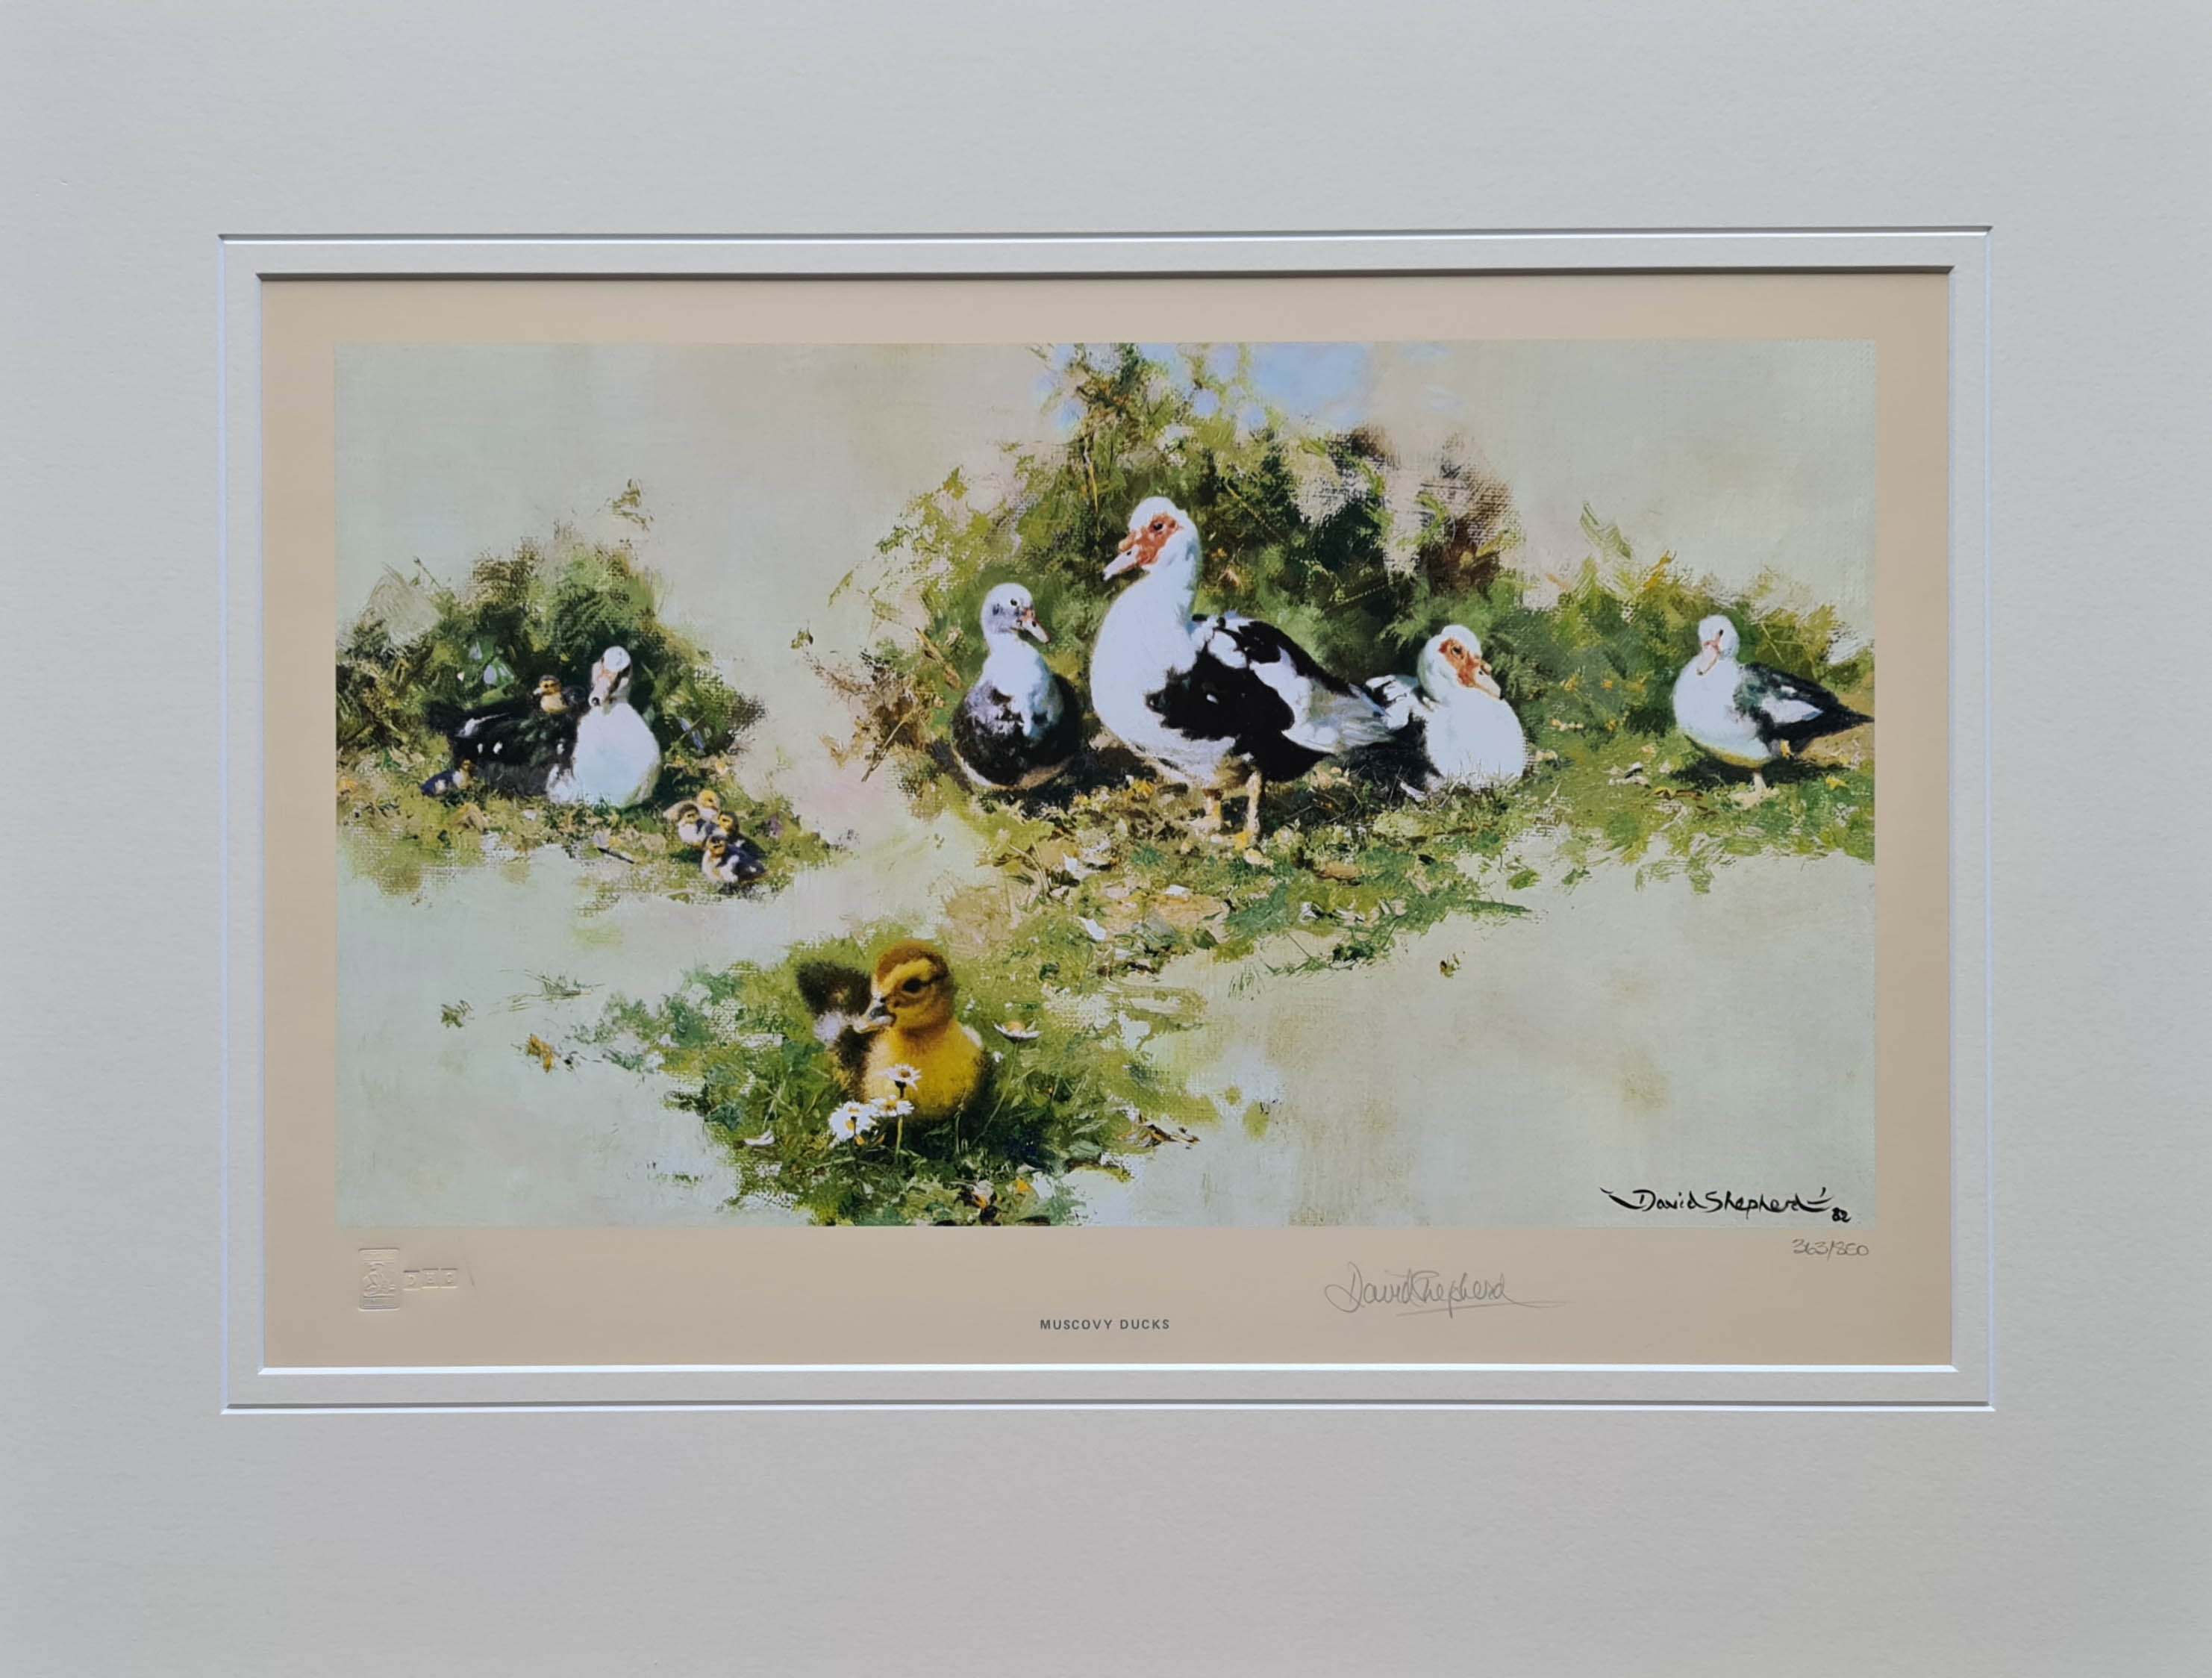 david shepherd muscovy ducks signed print